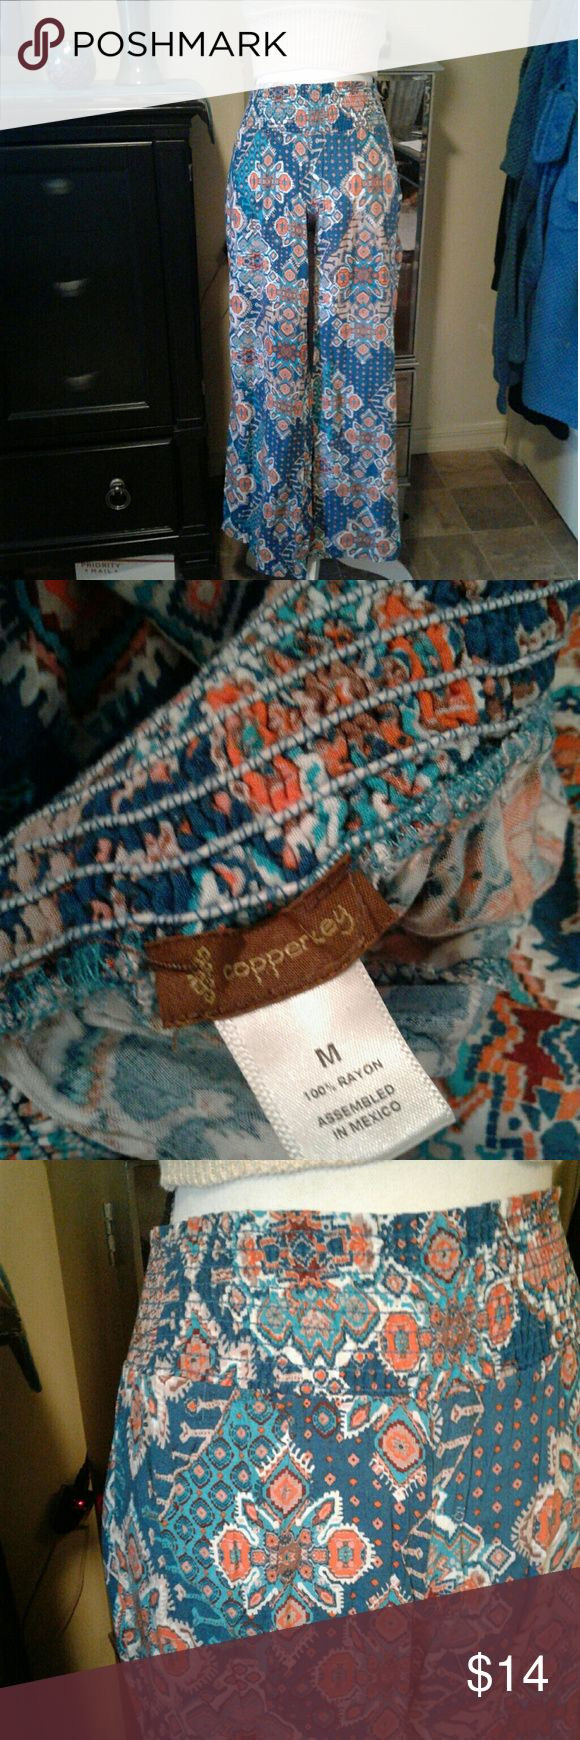 """Copper Key high waisted wide leg pant Women's very gently pre loved blue/Orange tribal Copper Key elastic high waisted wide leg flowy pants size Medium. Measurements waist 11"""" length 37"""". Thanks for looking Bundle to save!! Copper Key Pants Wide Leg"""